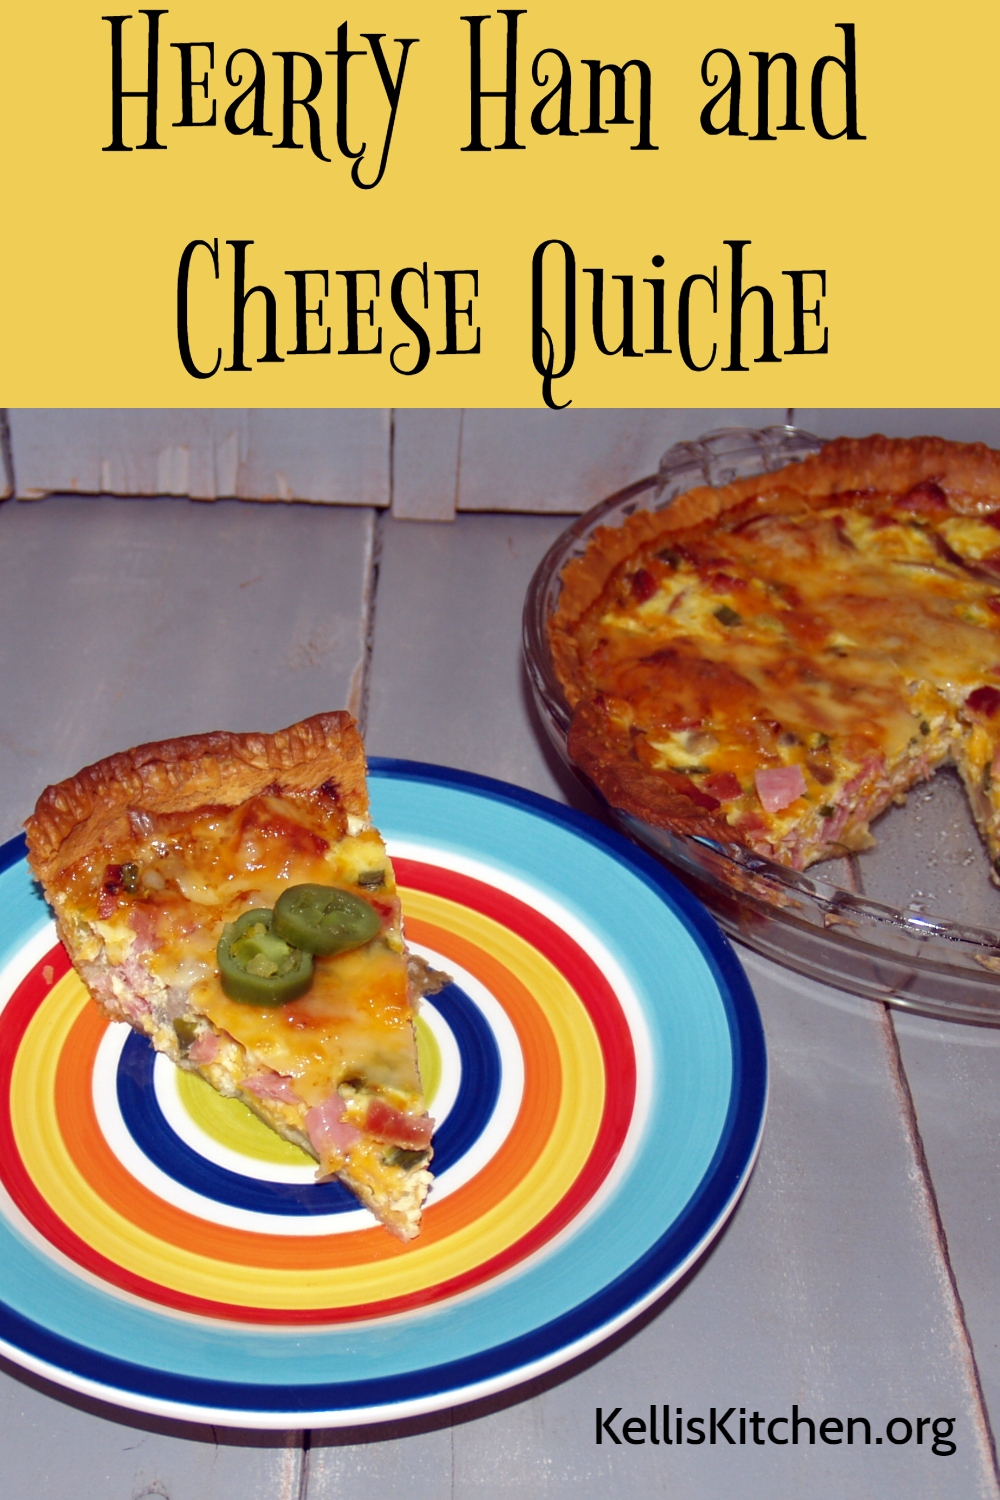 Hearty Ham and Cheese Quiche via @KitchenKelli